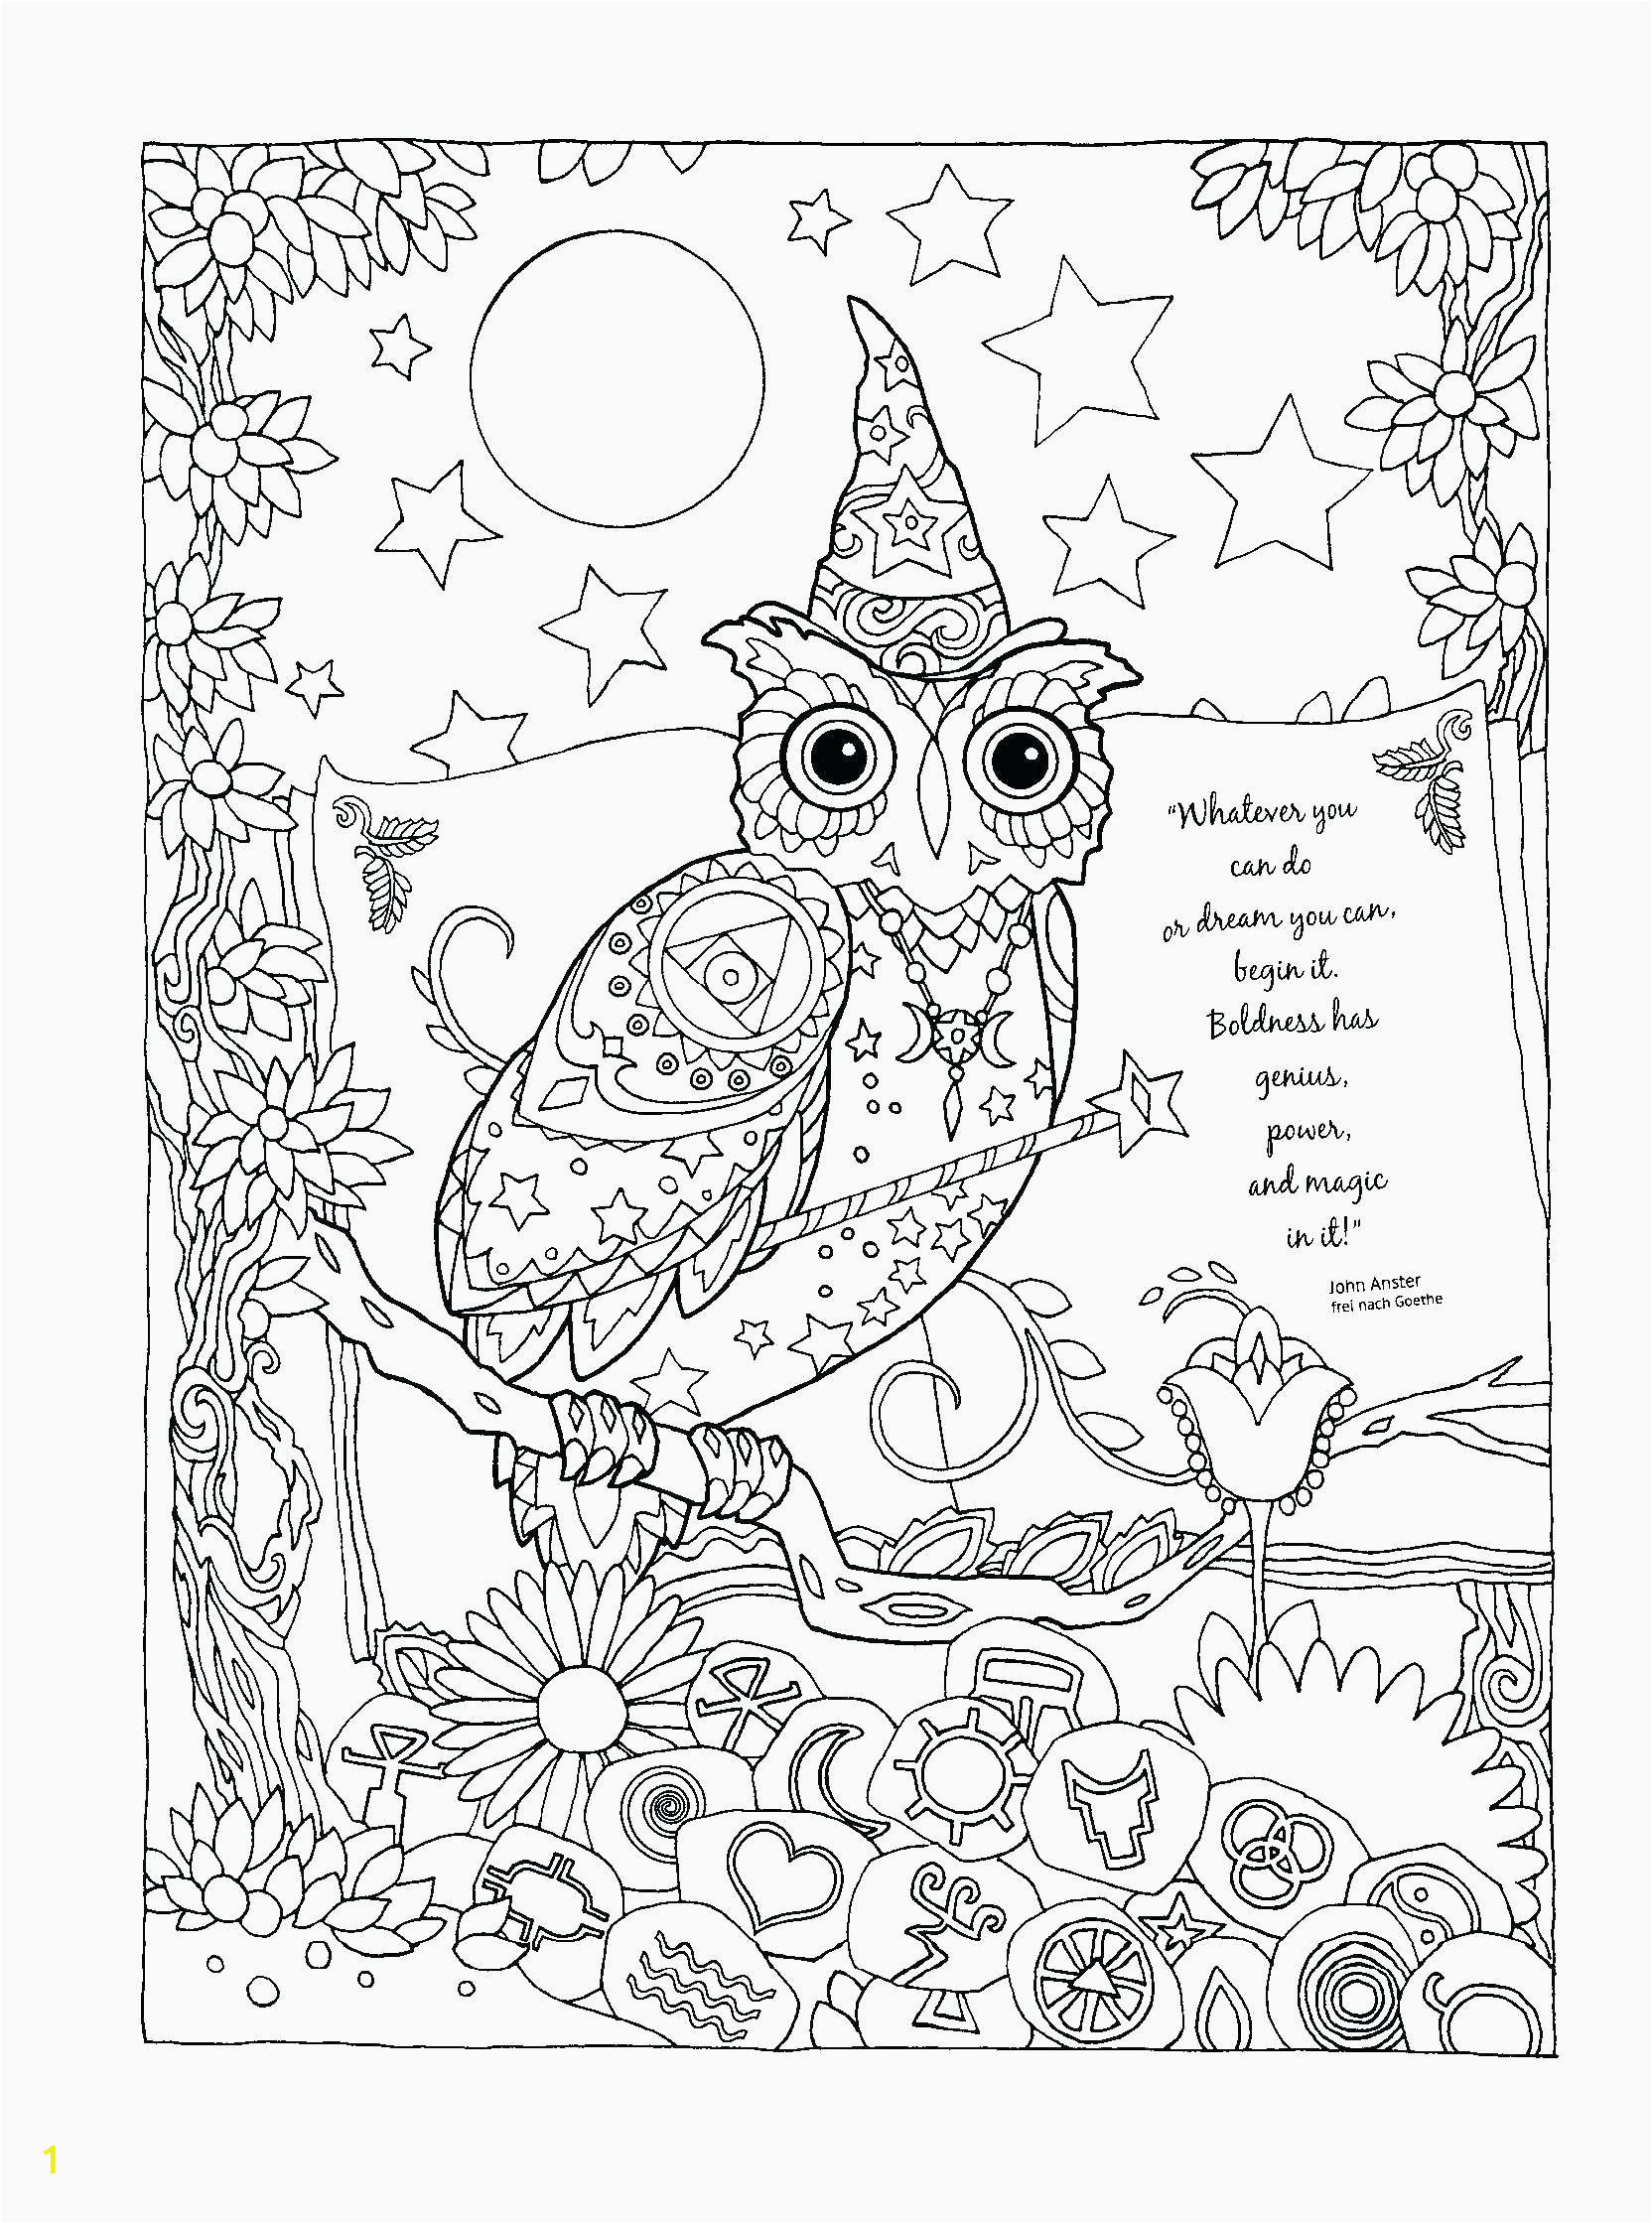 Disney Trippy Coloring Pages Coloring Activities for Grade 2 Beautiful Math Facts